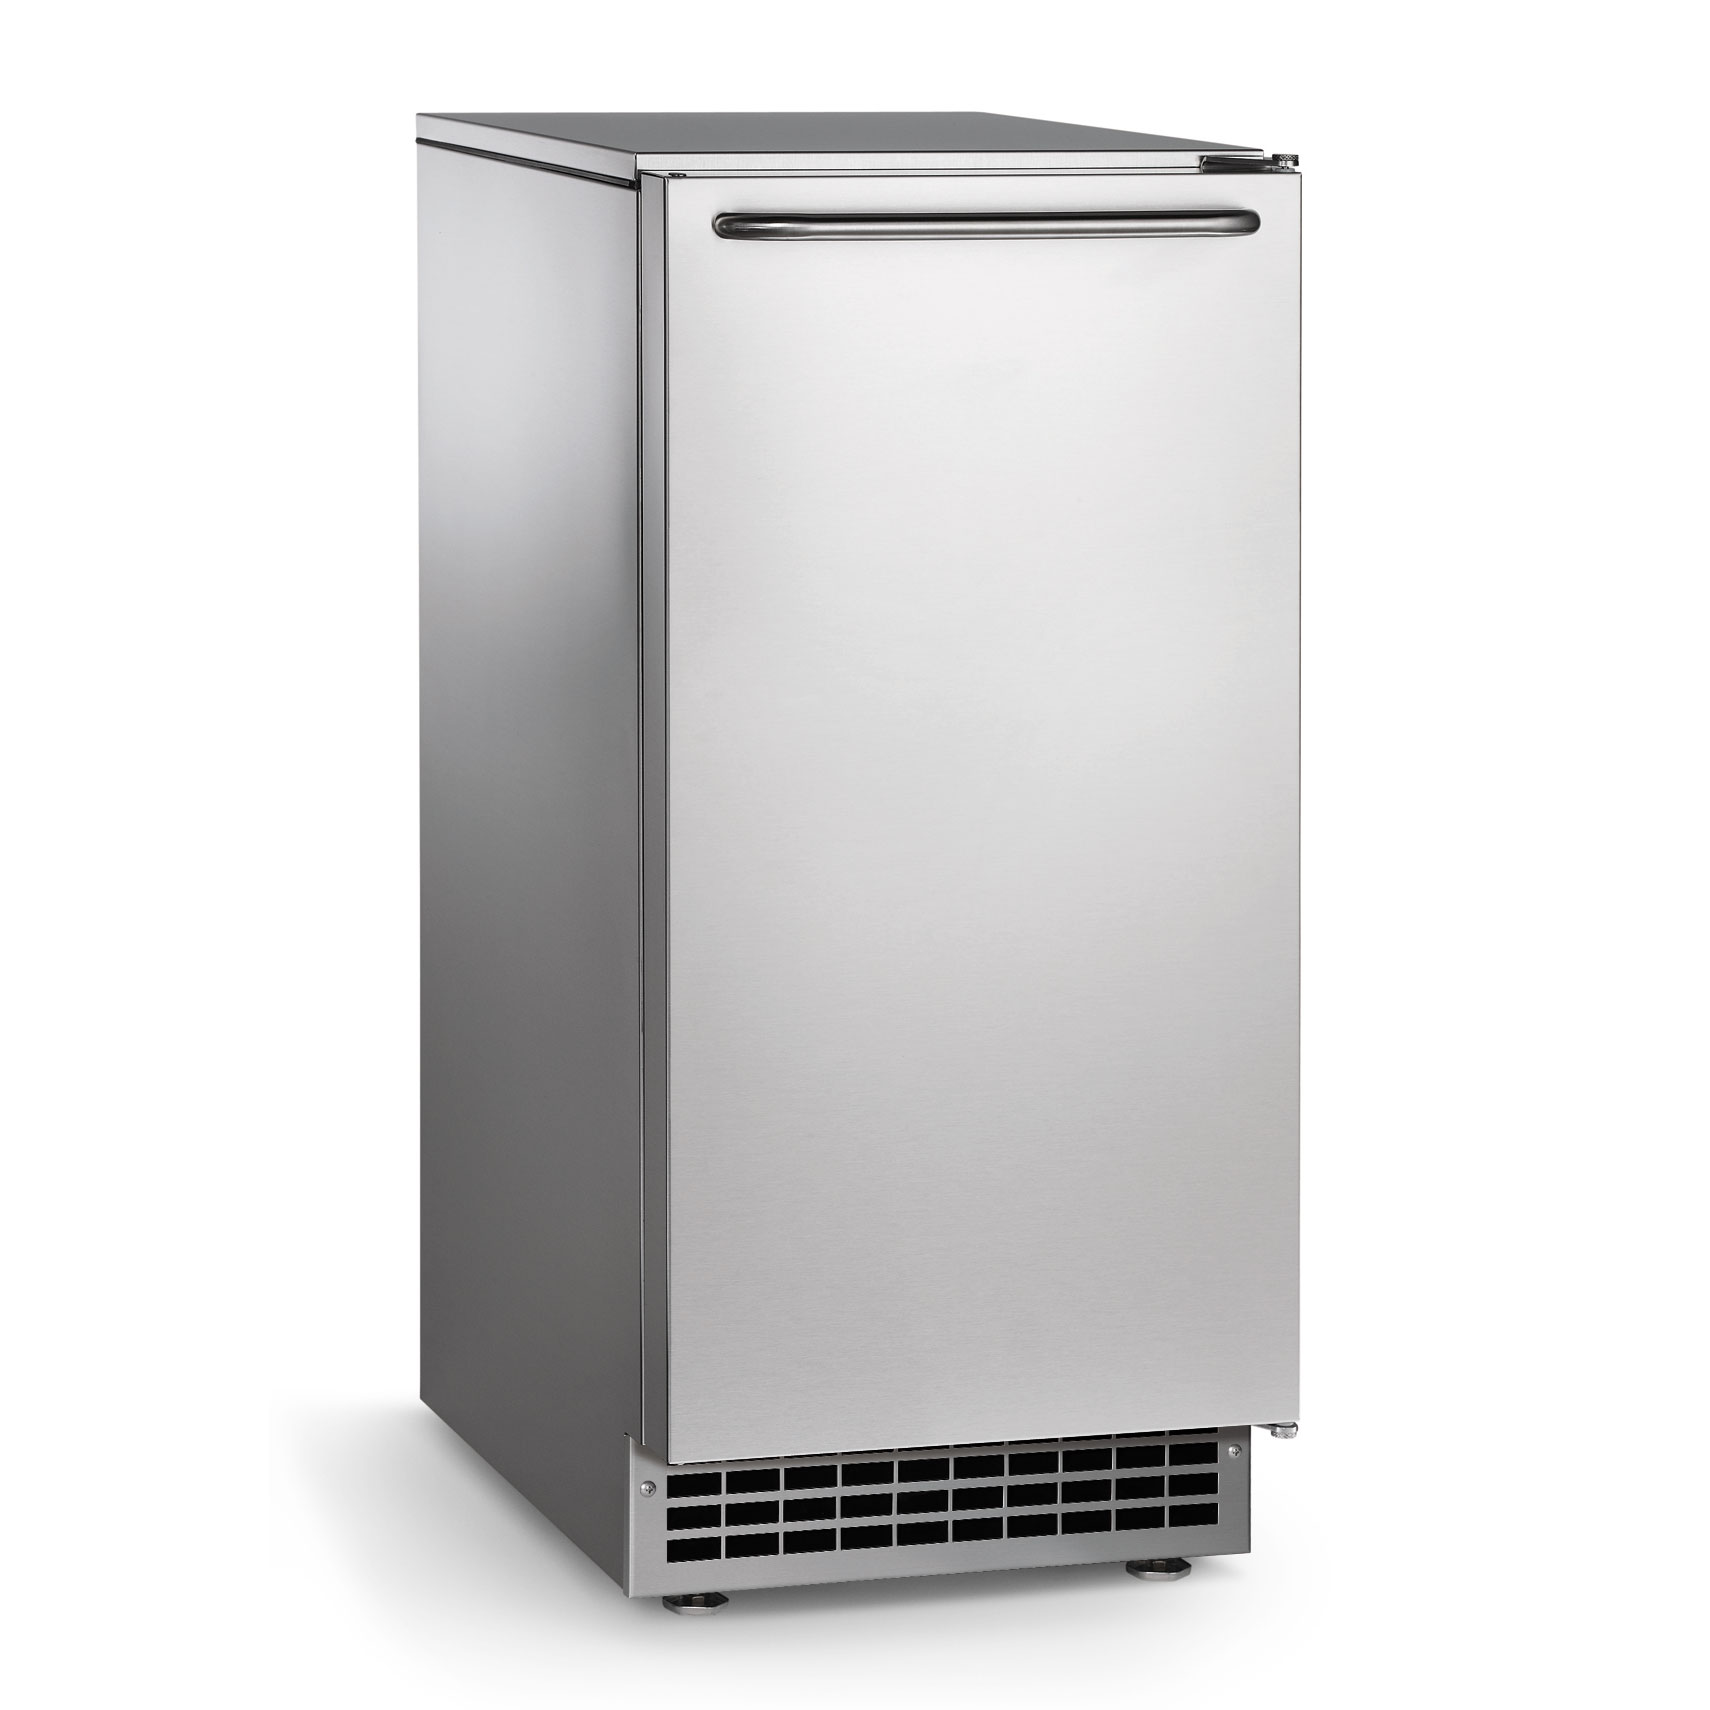 Scotsman CU50PA-1 Undercounter Top Hat Ice Maker - 65-lbs/day, Pump Drain, Outdoor Rated, 115v